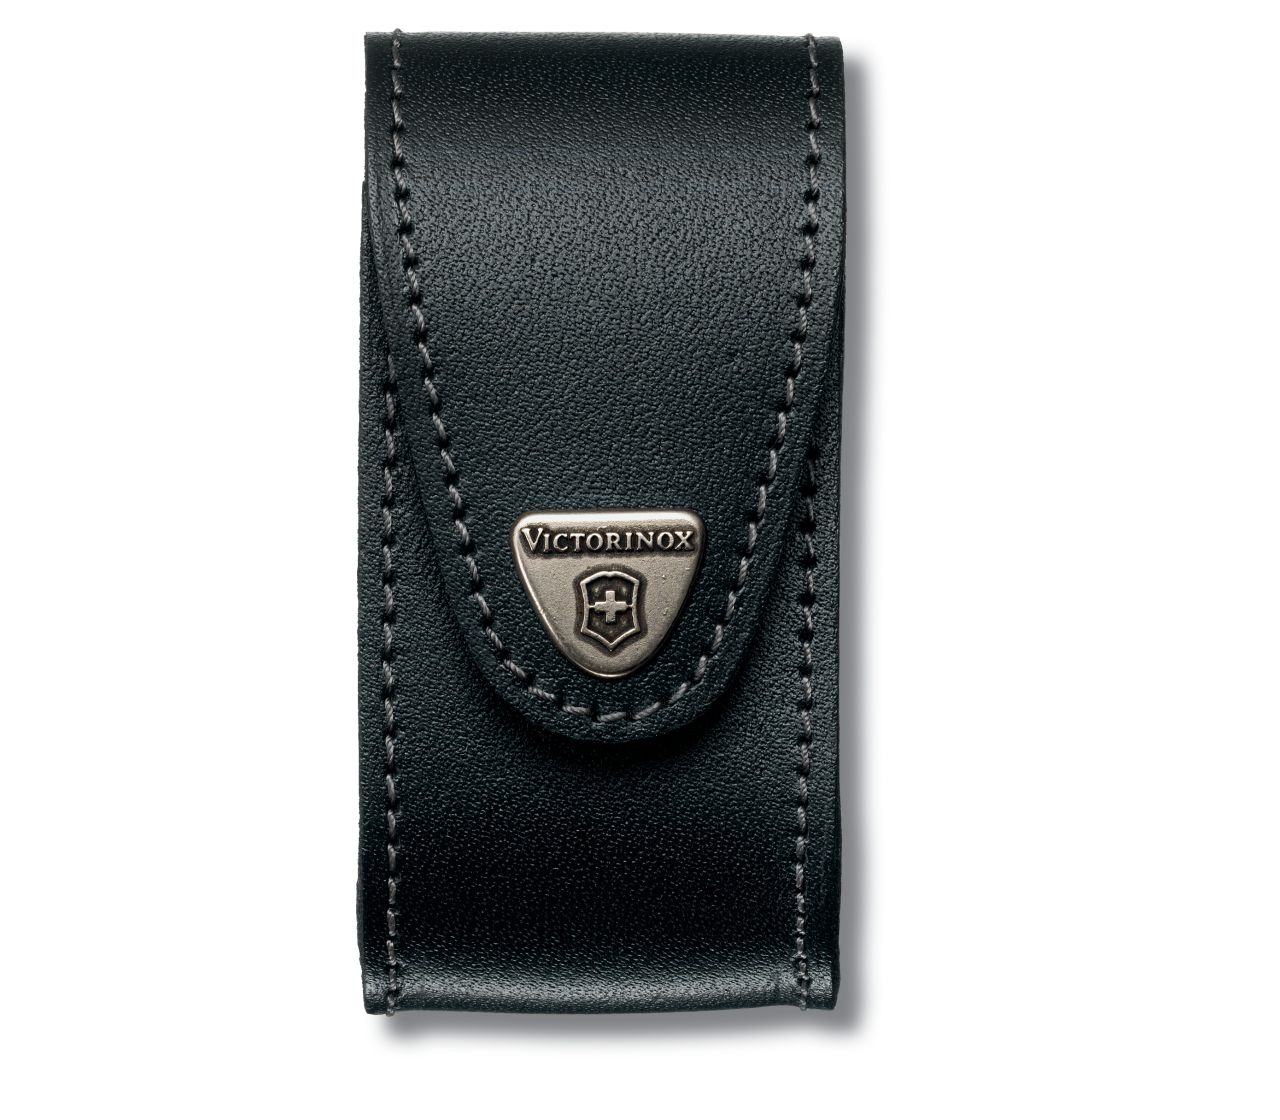 Victorinox Black Leather Pouch 91 93 Mm 5 8 Layers